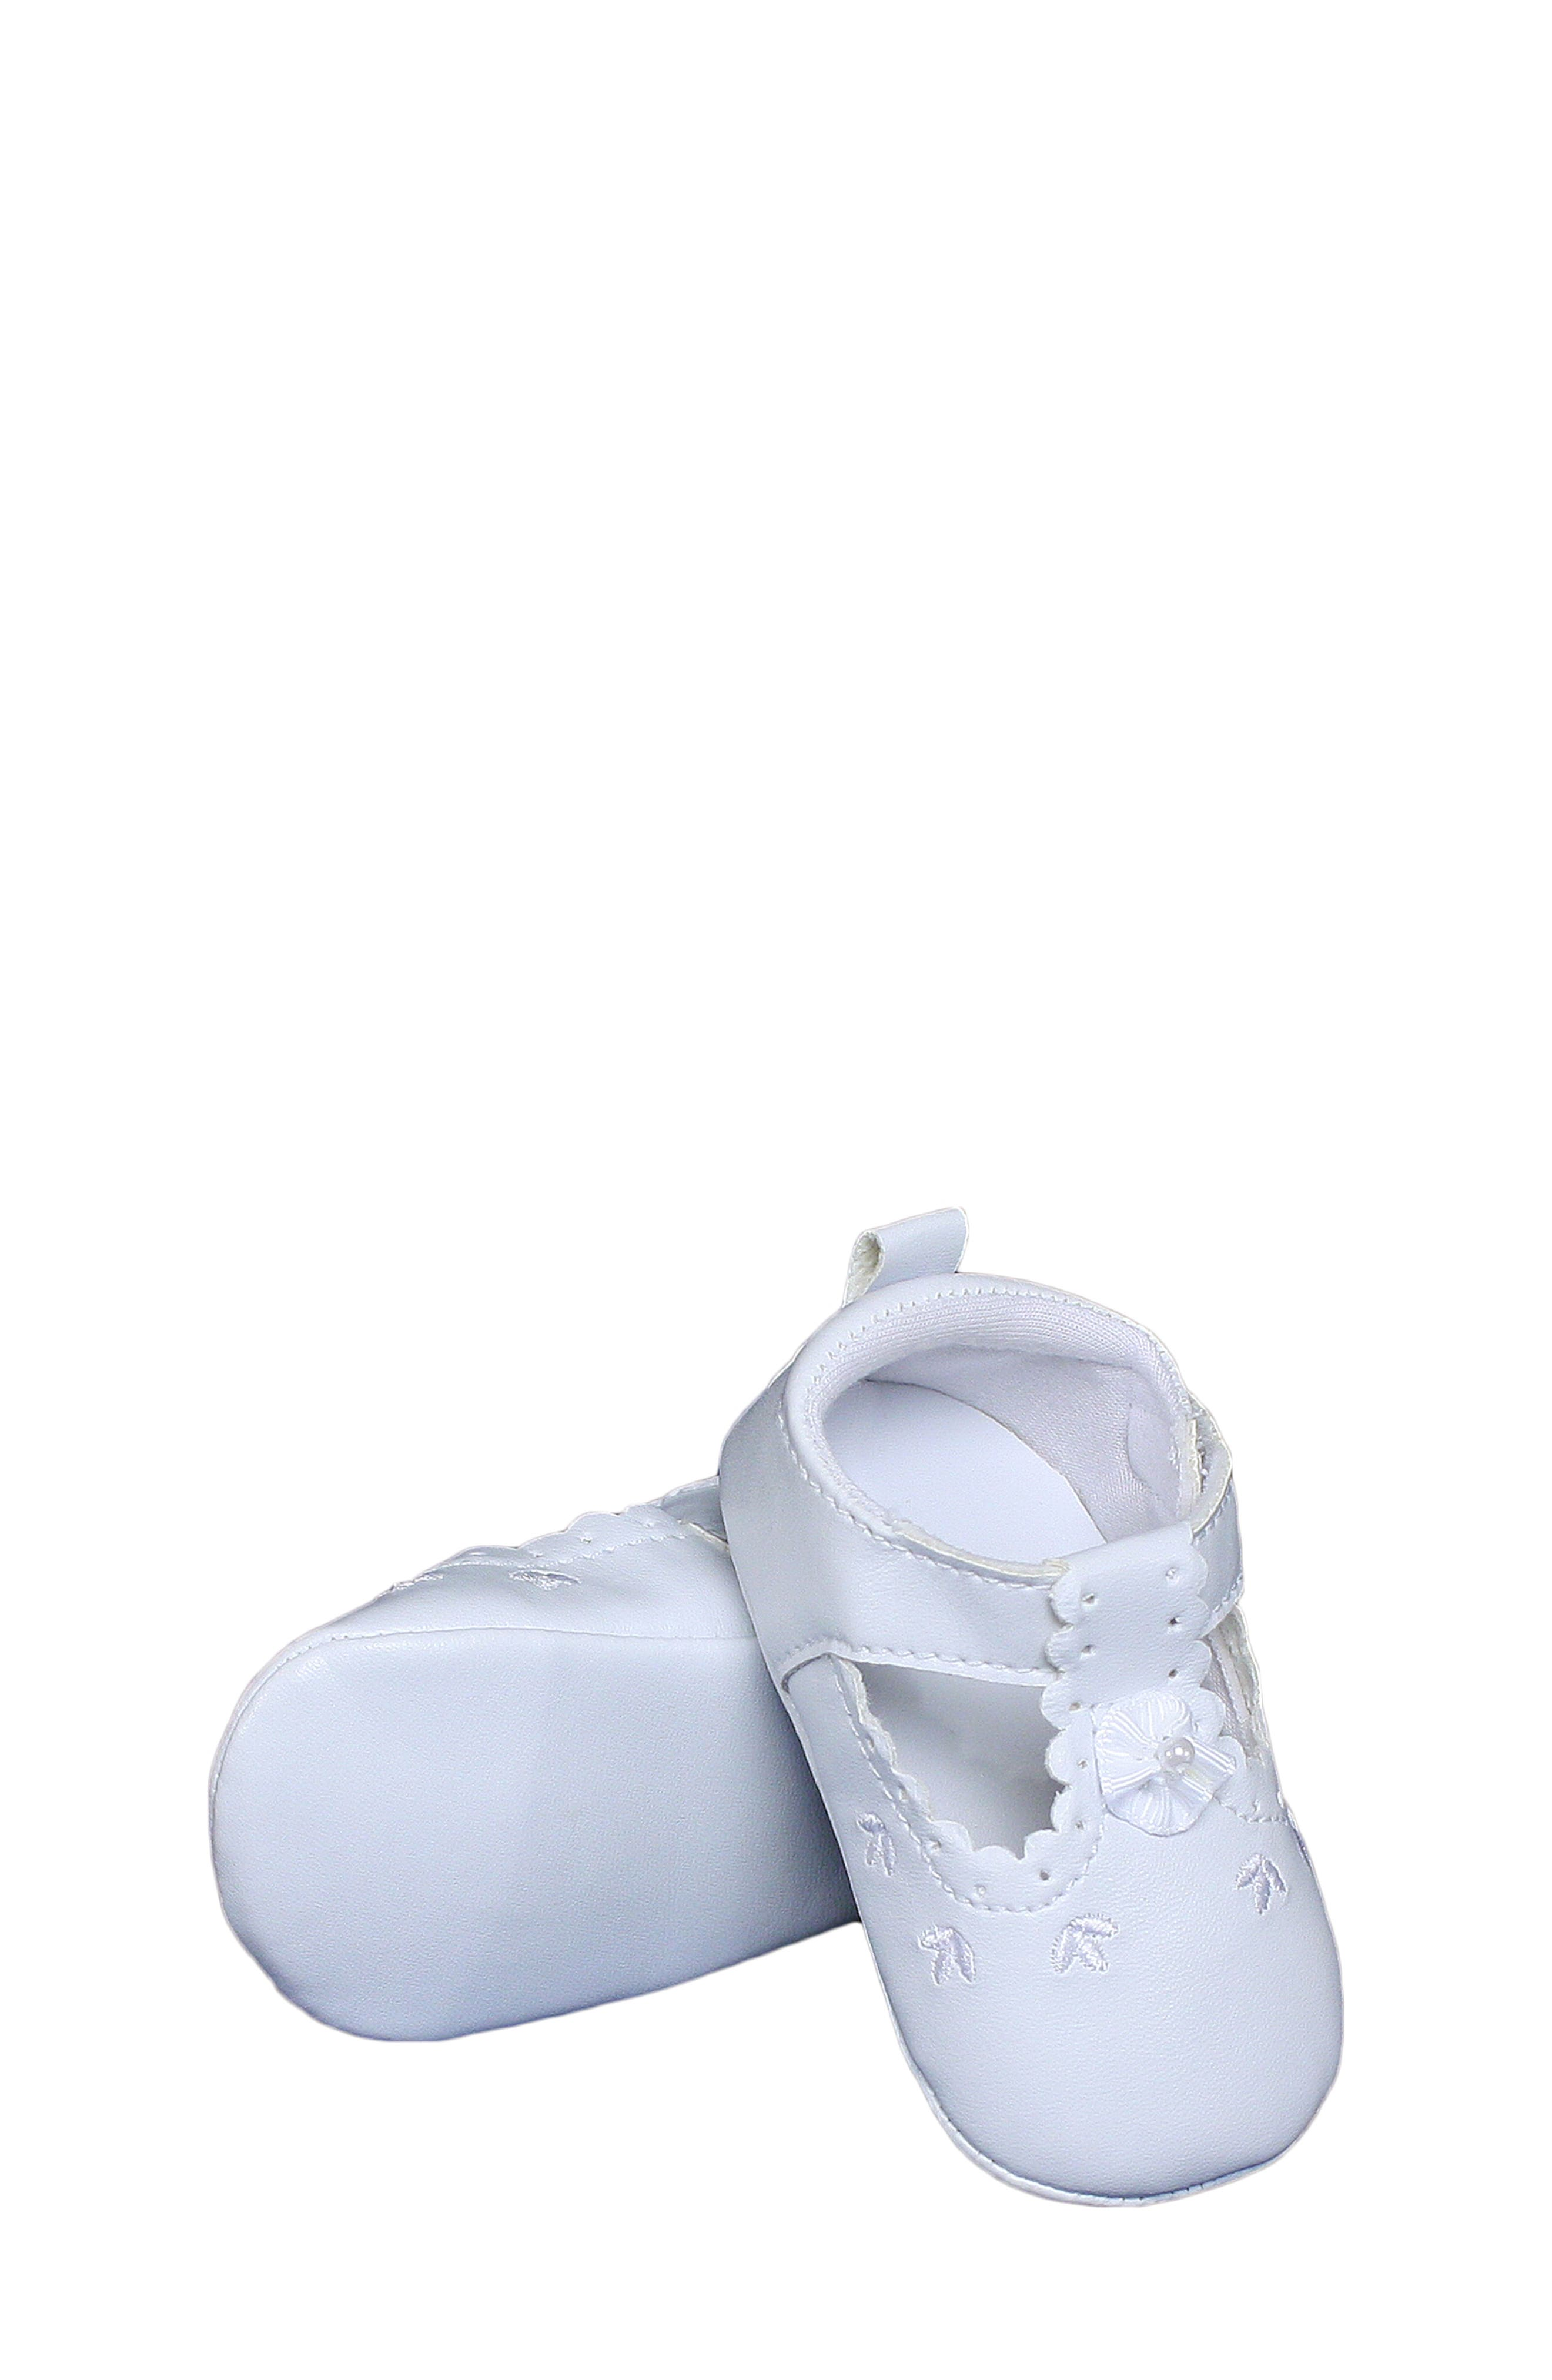 Mary Jane Crib Shoe,                             Alternate thumbnail 4, color,                             White